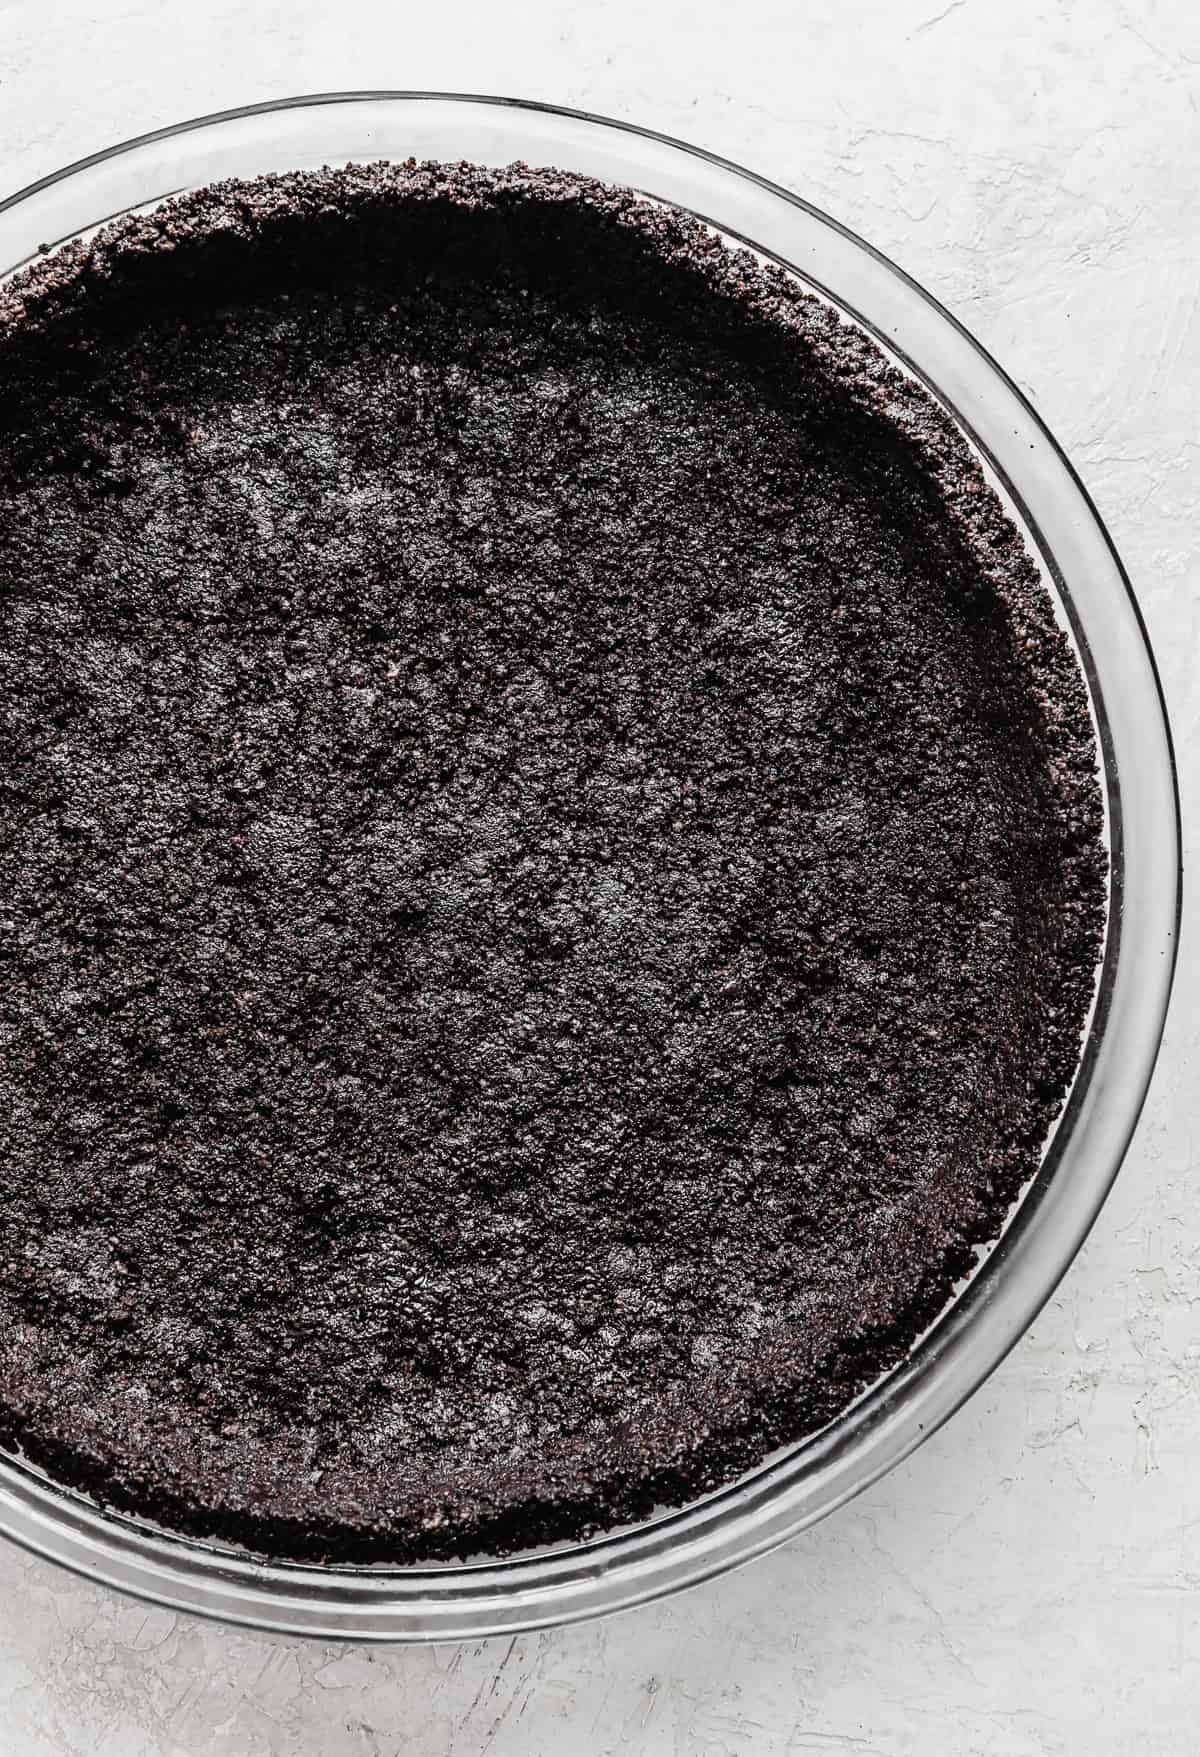 An Oreo Pie Crust on a gray textured background.